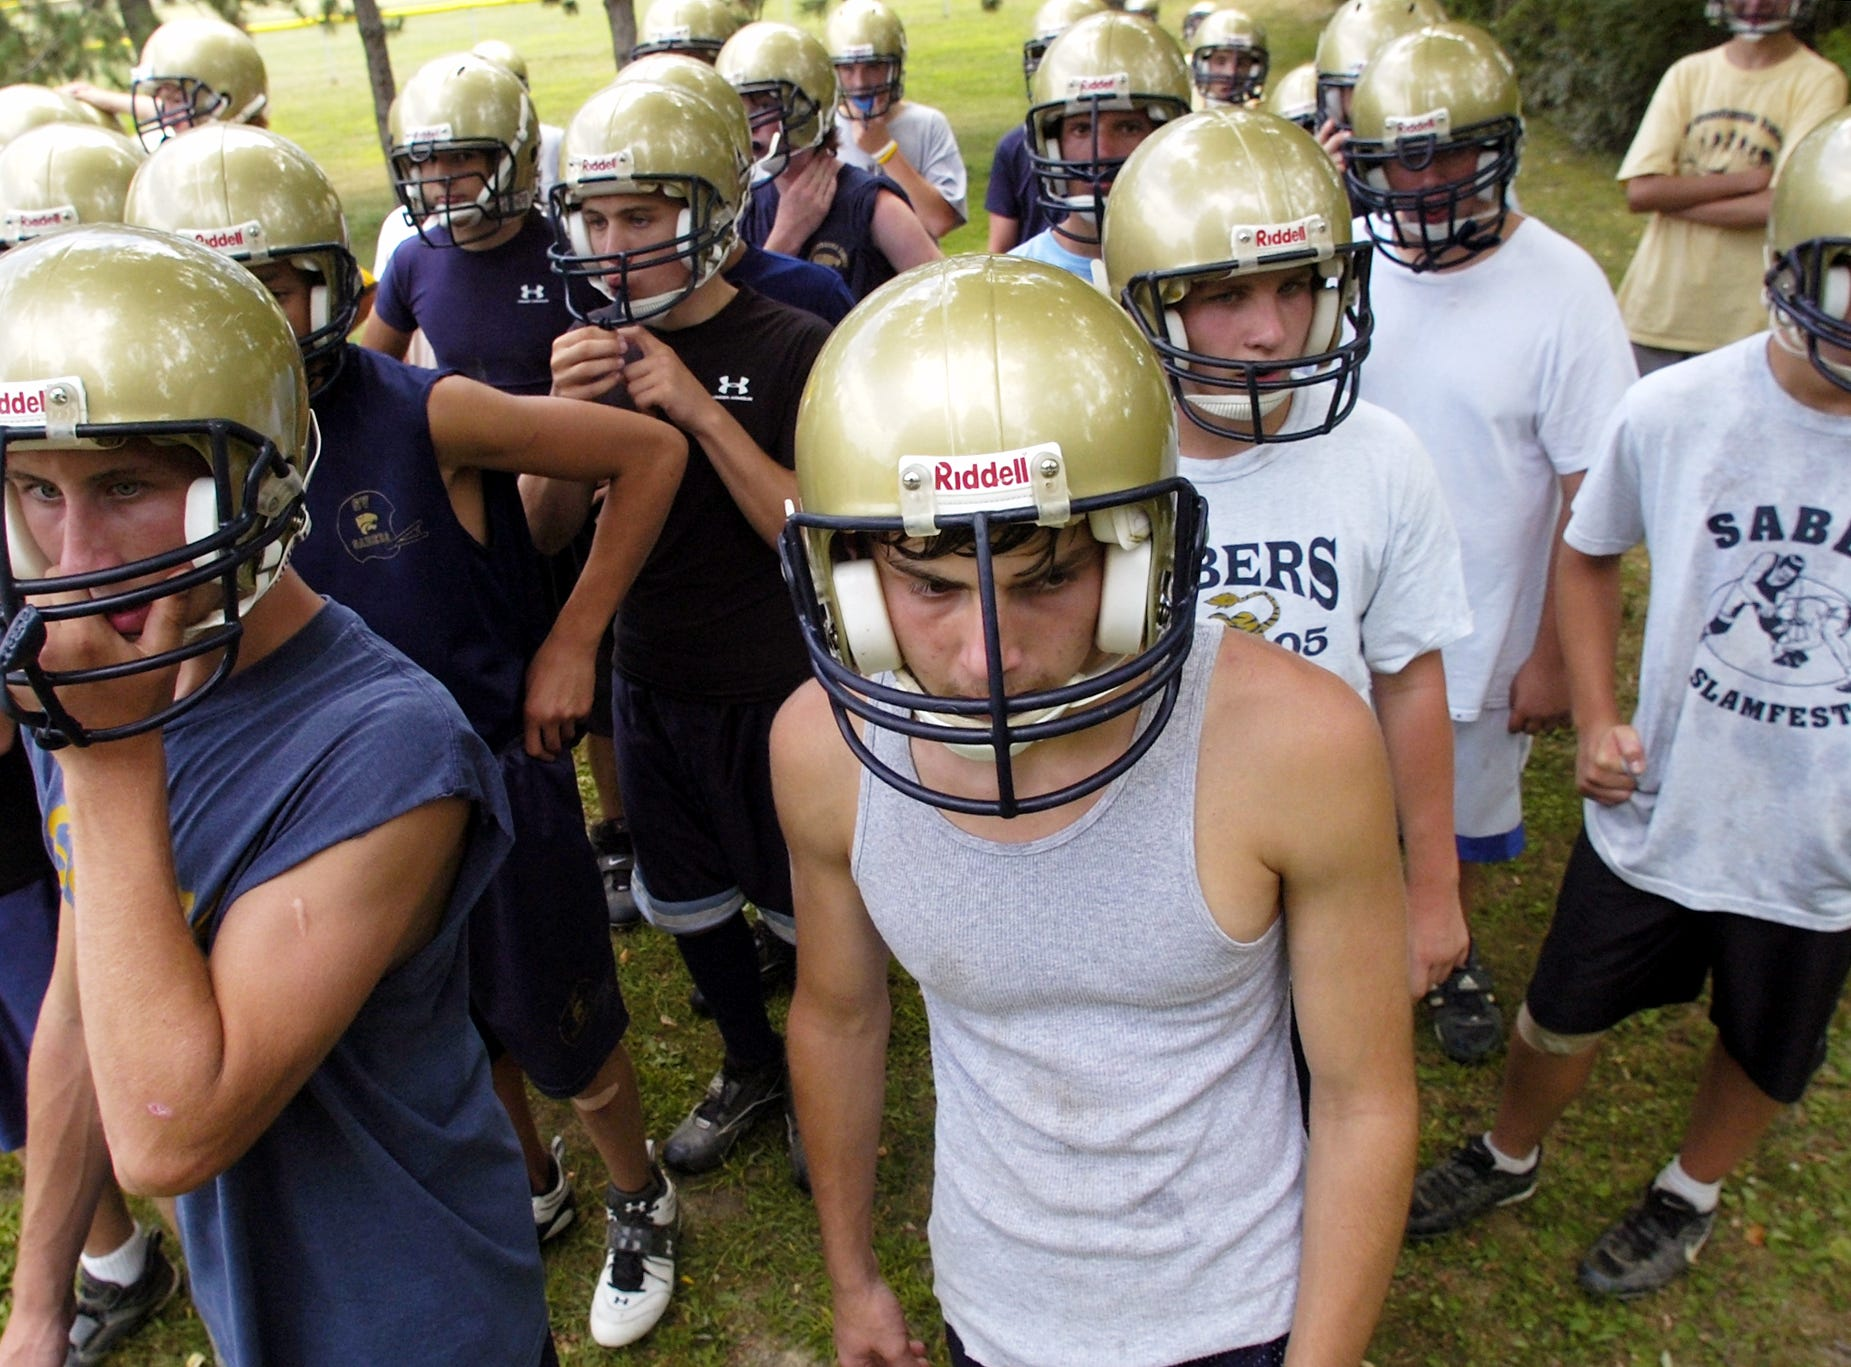 From 2006: Junior varsity football players gather during practice at Susquehanna Valley High School on Monday. Josh Marbaker, center, was one of several players displaced by the flood.